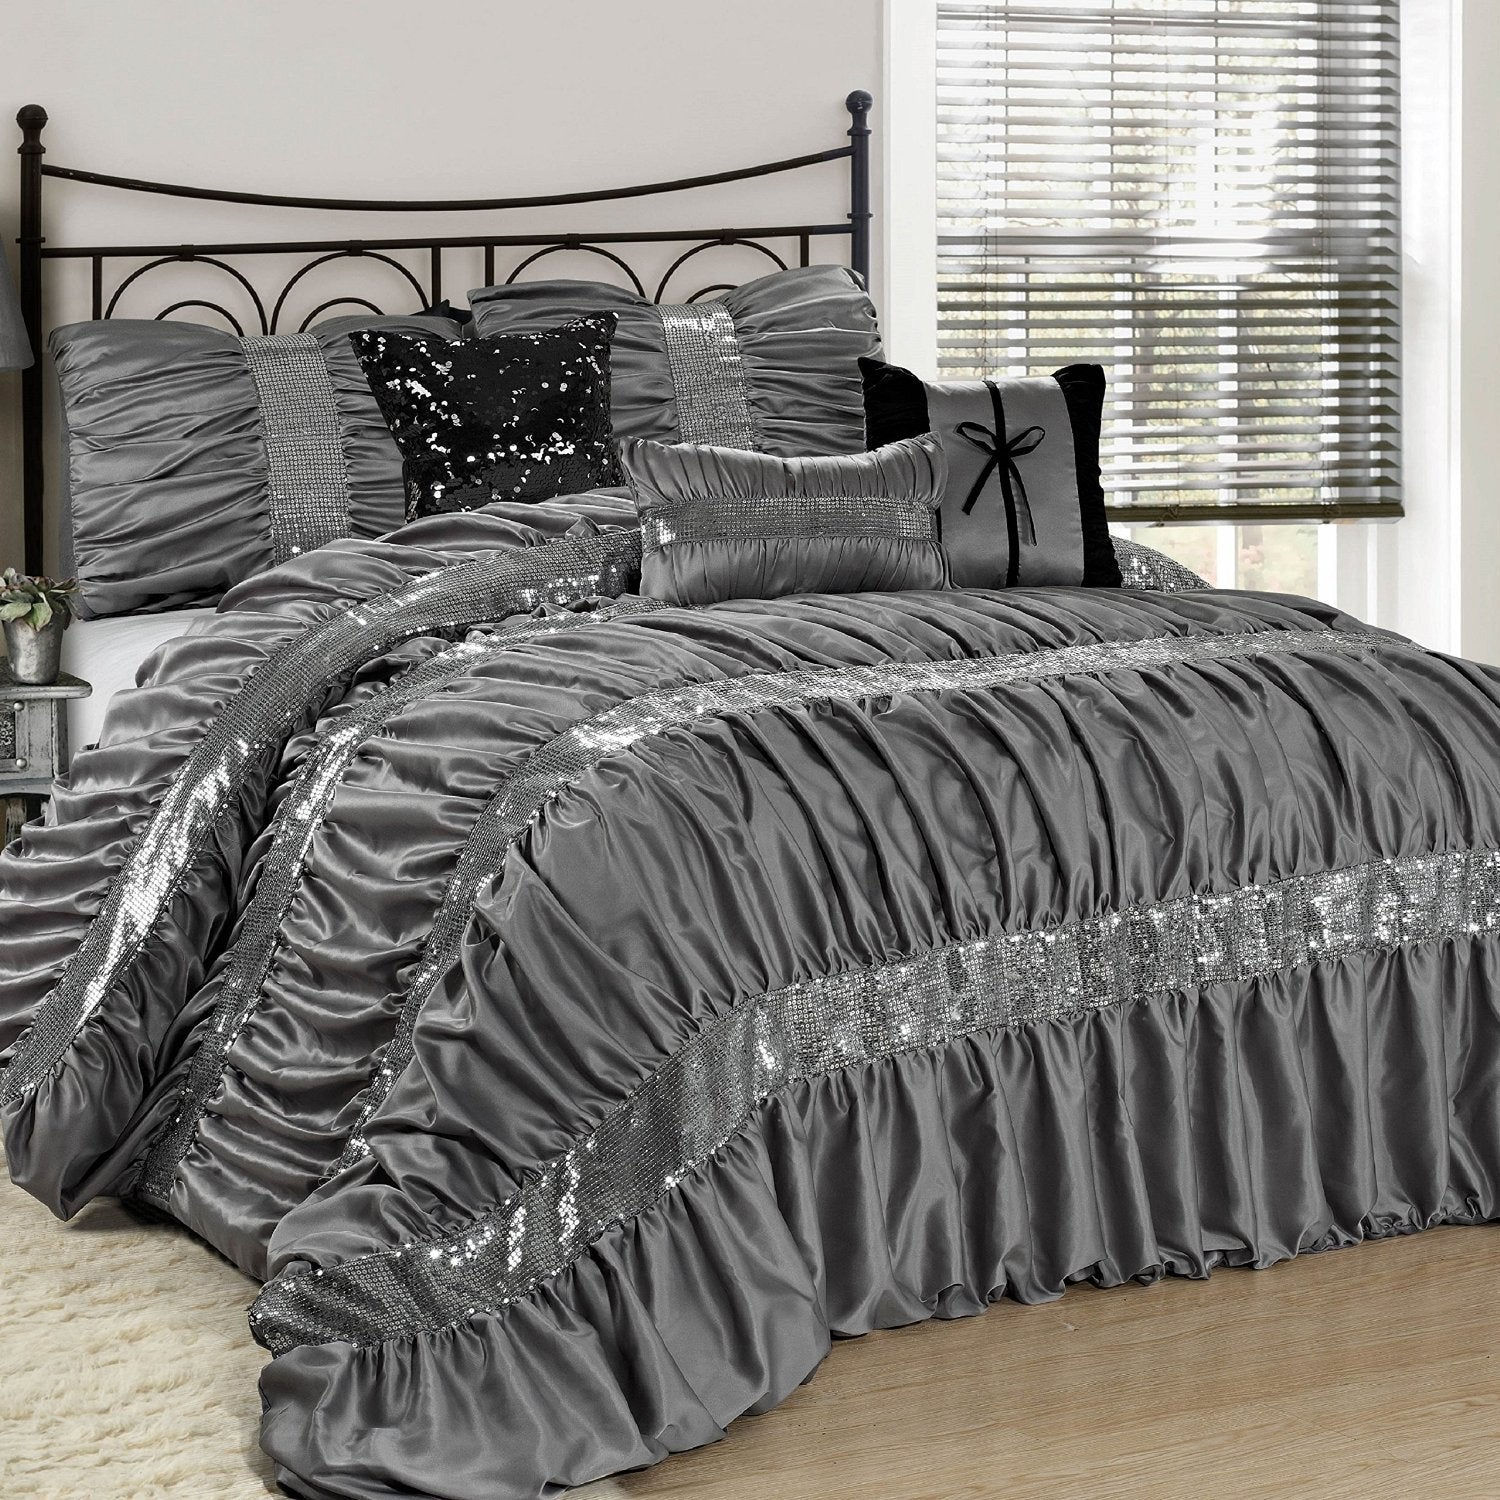 collections piece bedding gray tone scroll catalina com floral embroidered set comforter pattern